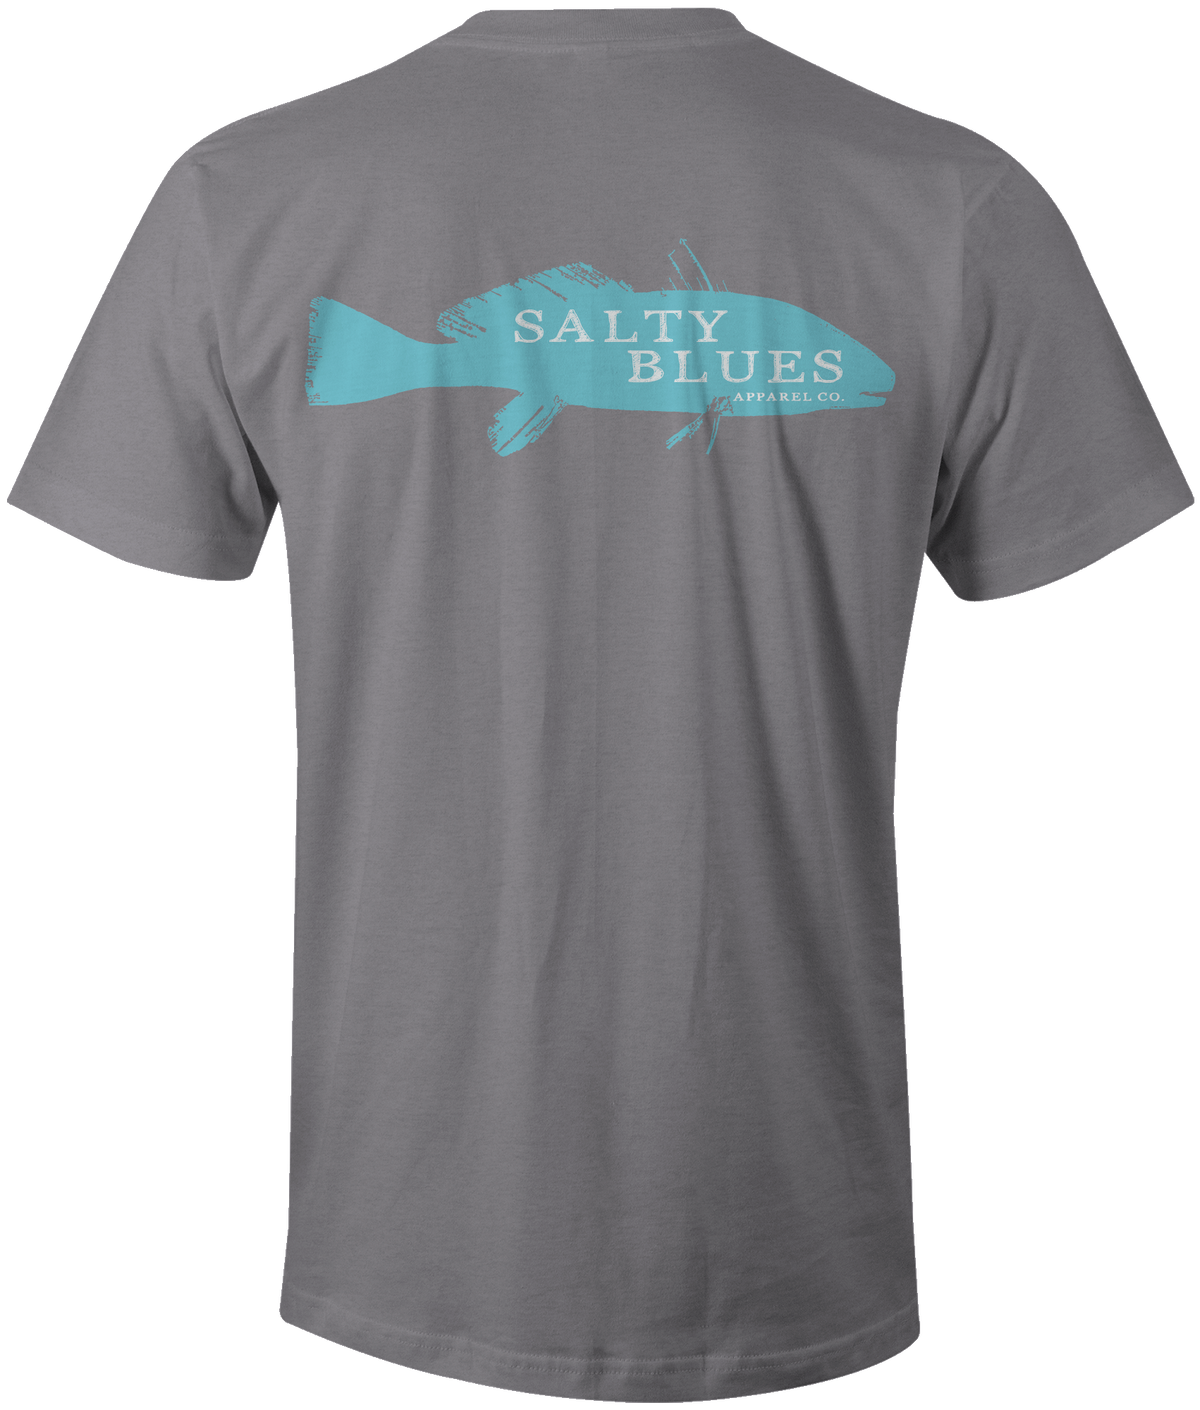 Redfish - T-Shirt - Latitudes & Attitudes LLC